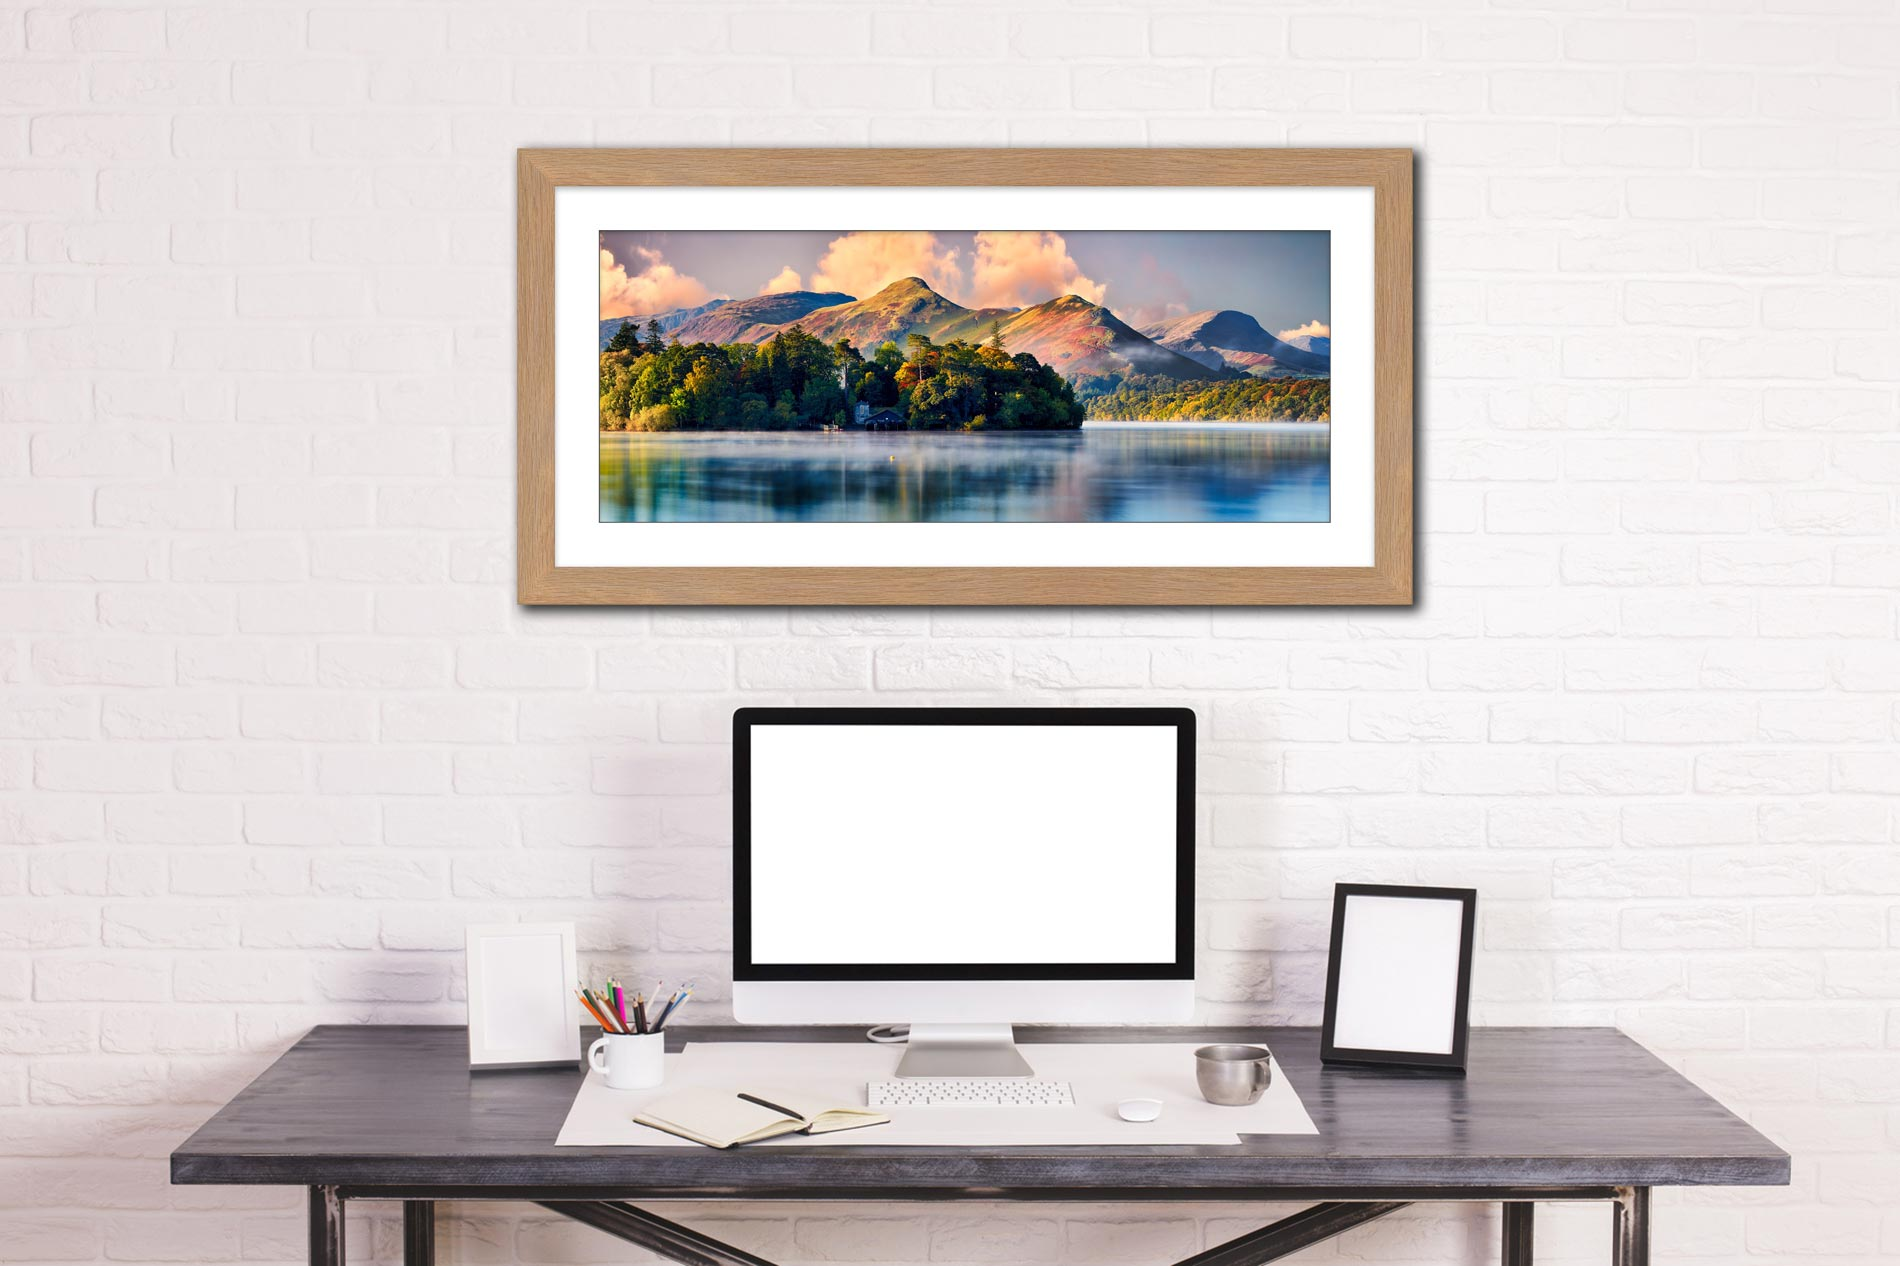 Morning Mists Around Derwent Isle - Framed Print with Mount on Wall